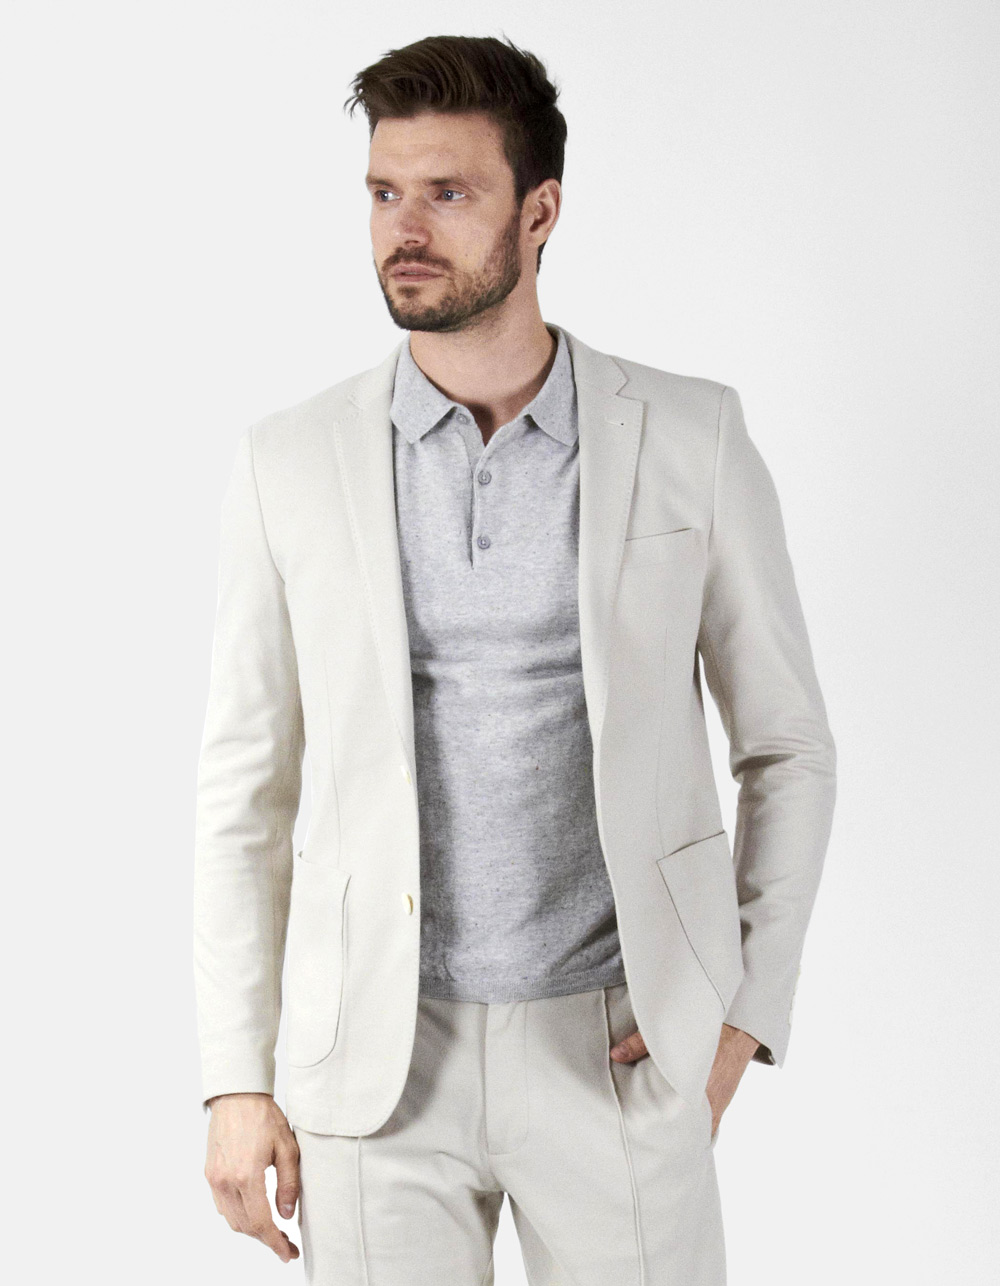 White plain blazer